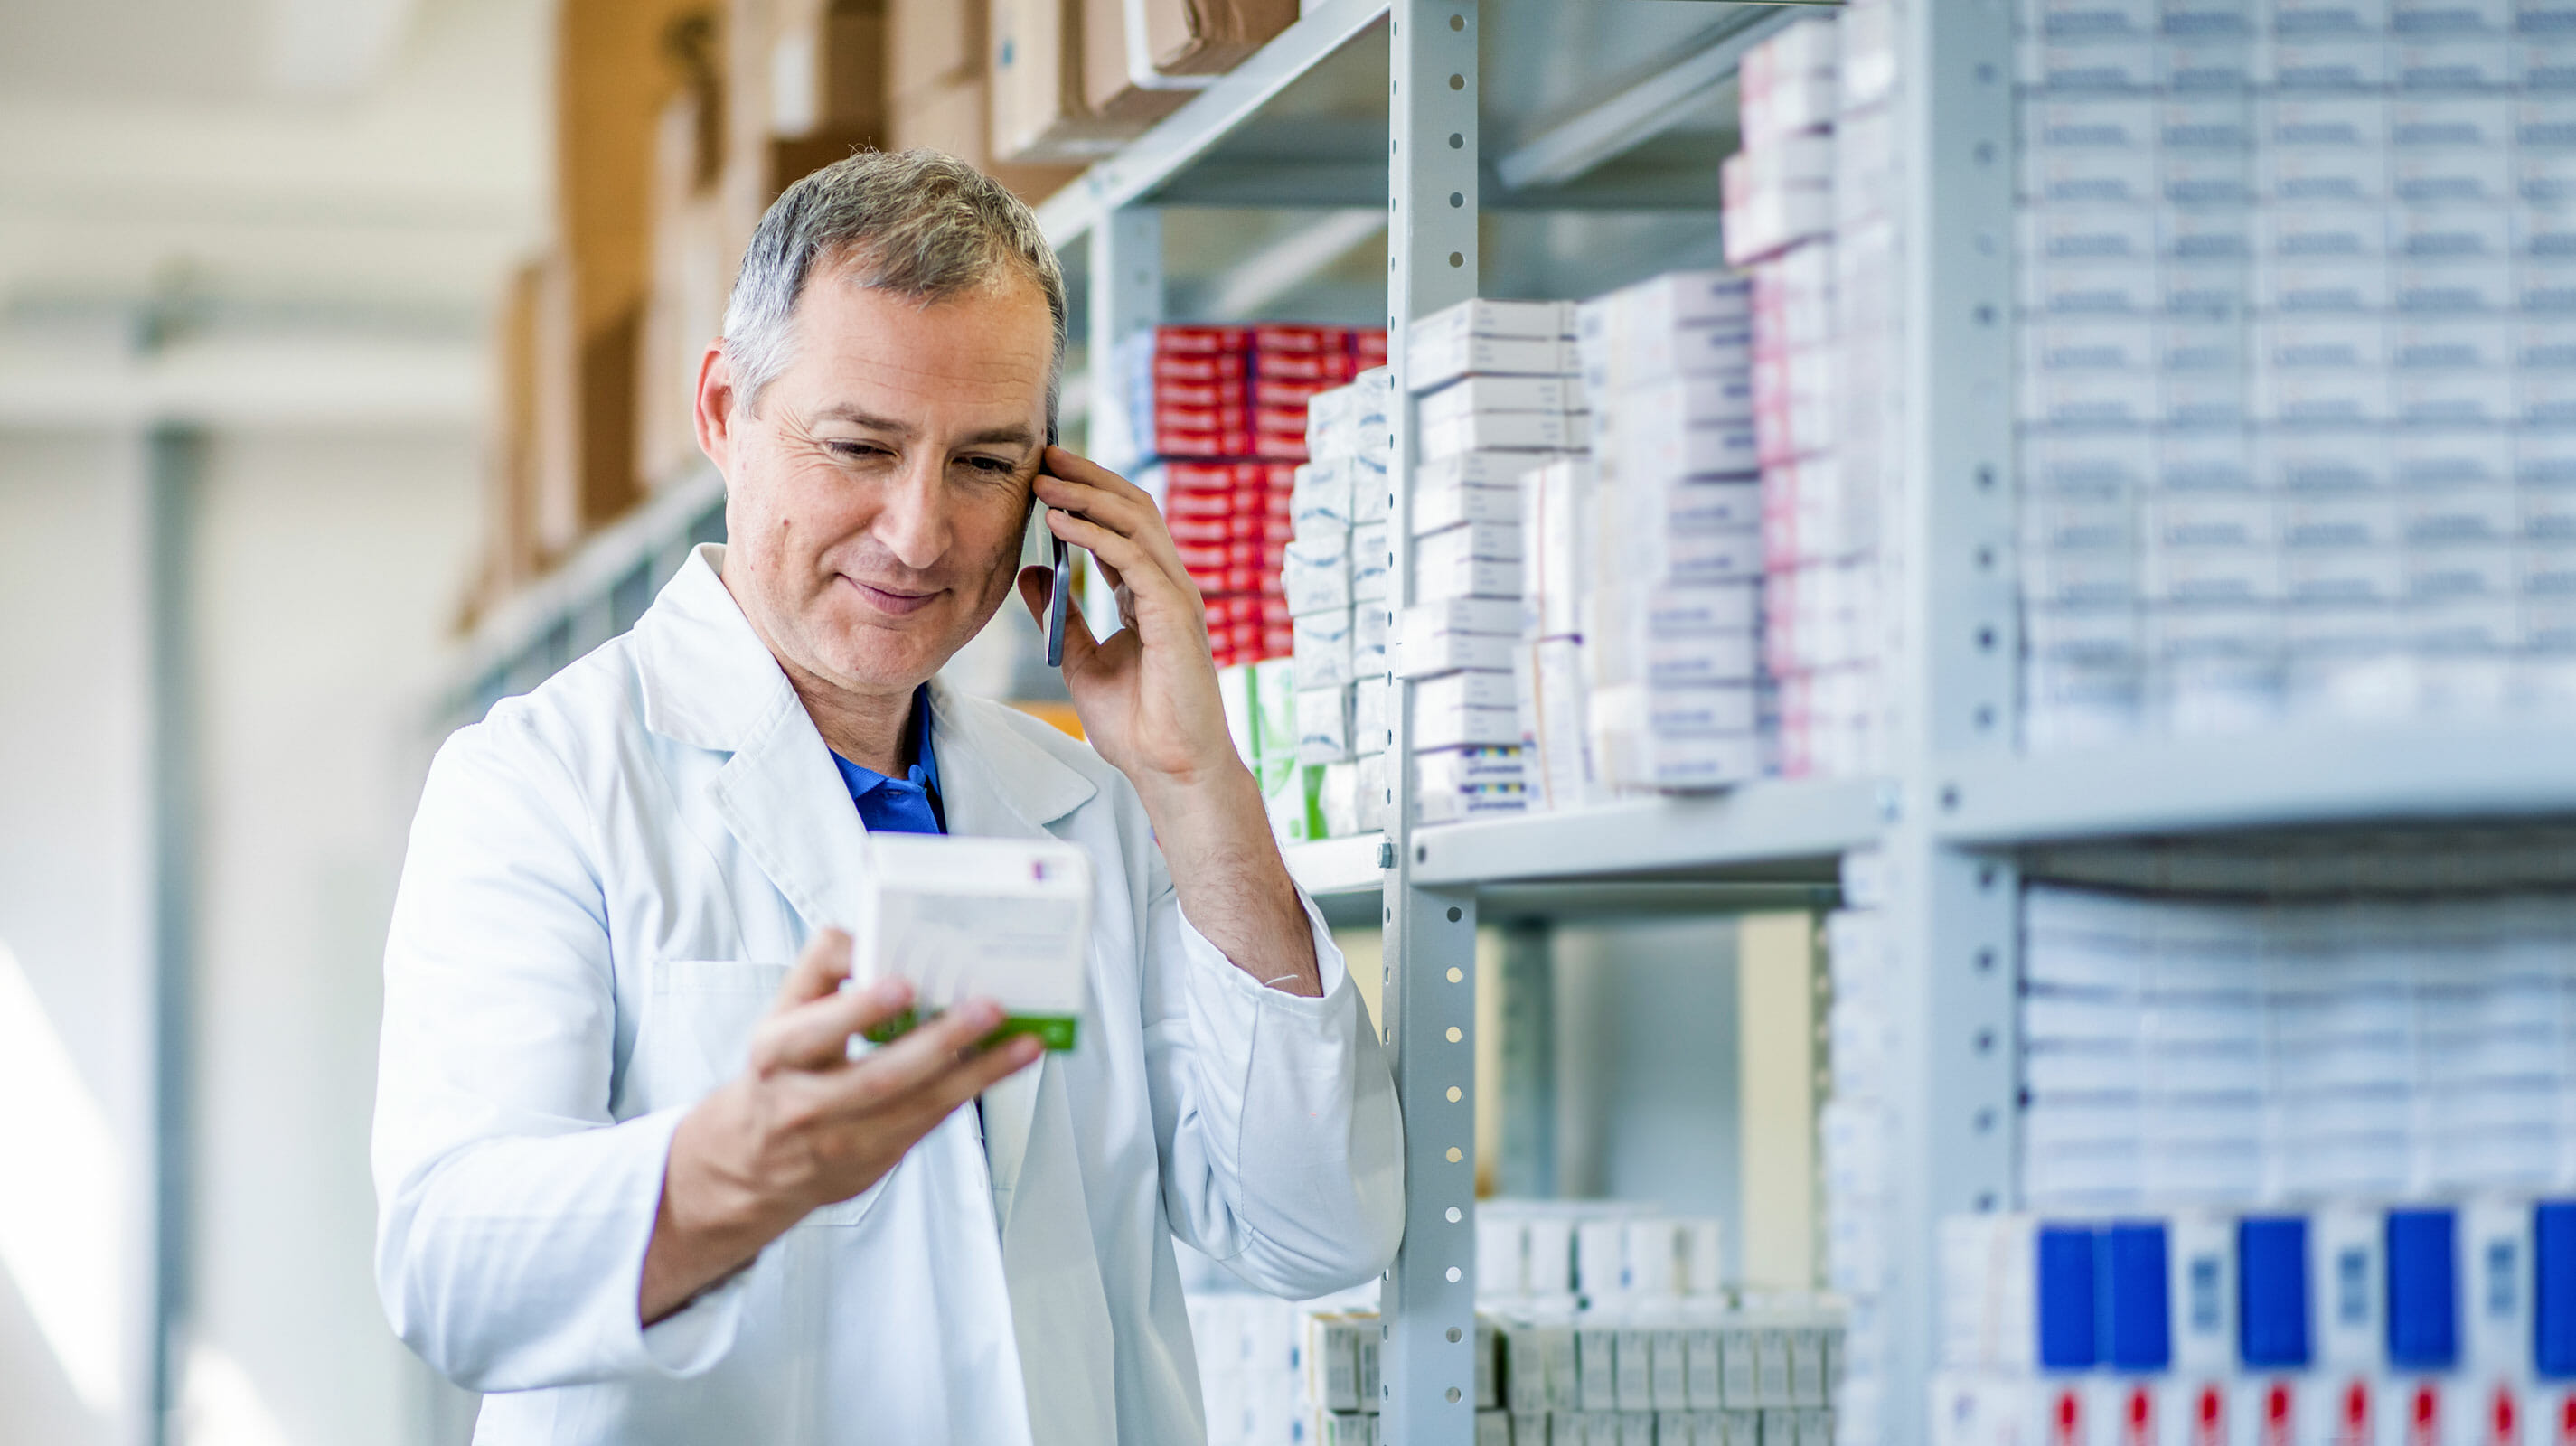 Shot of pharmacist looking at medicine while talking on the phone